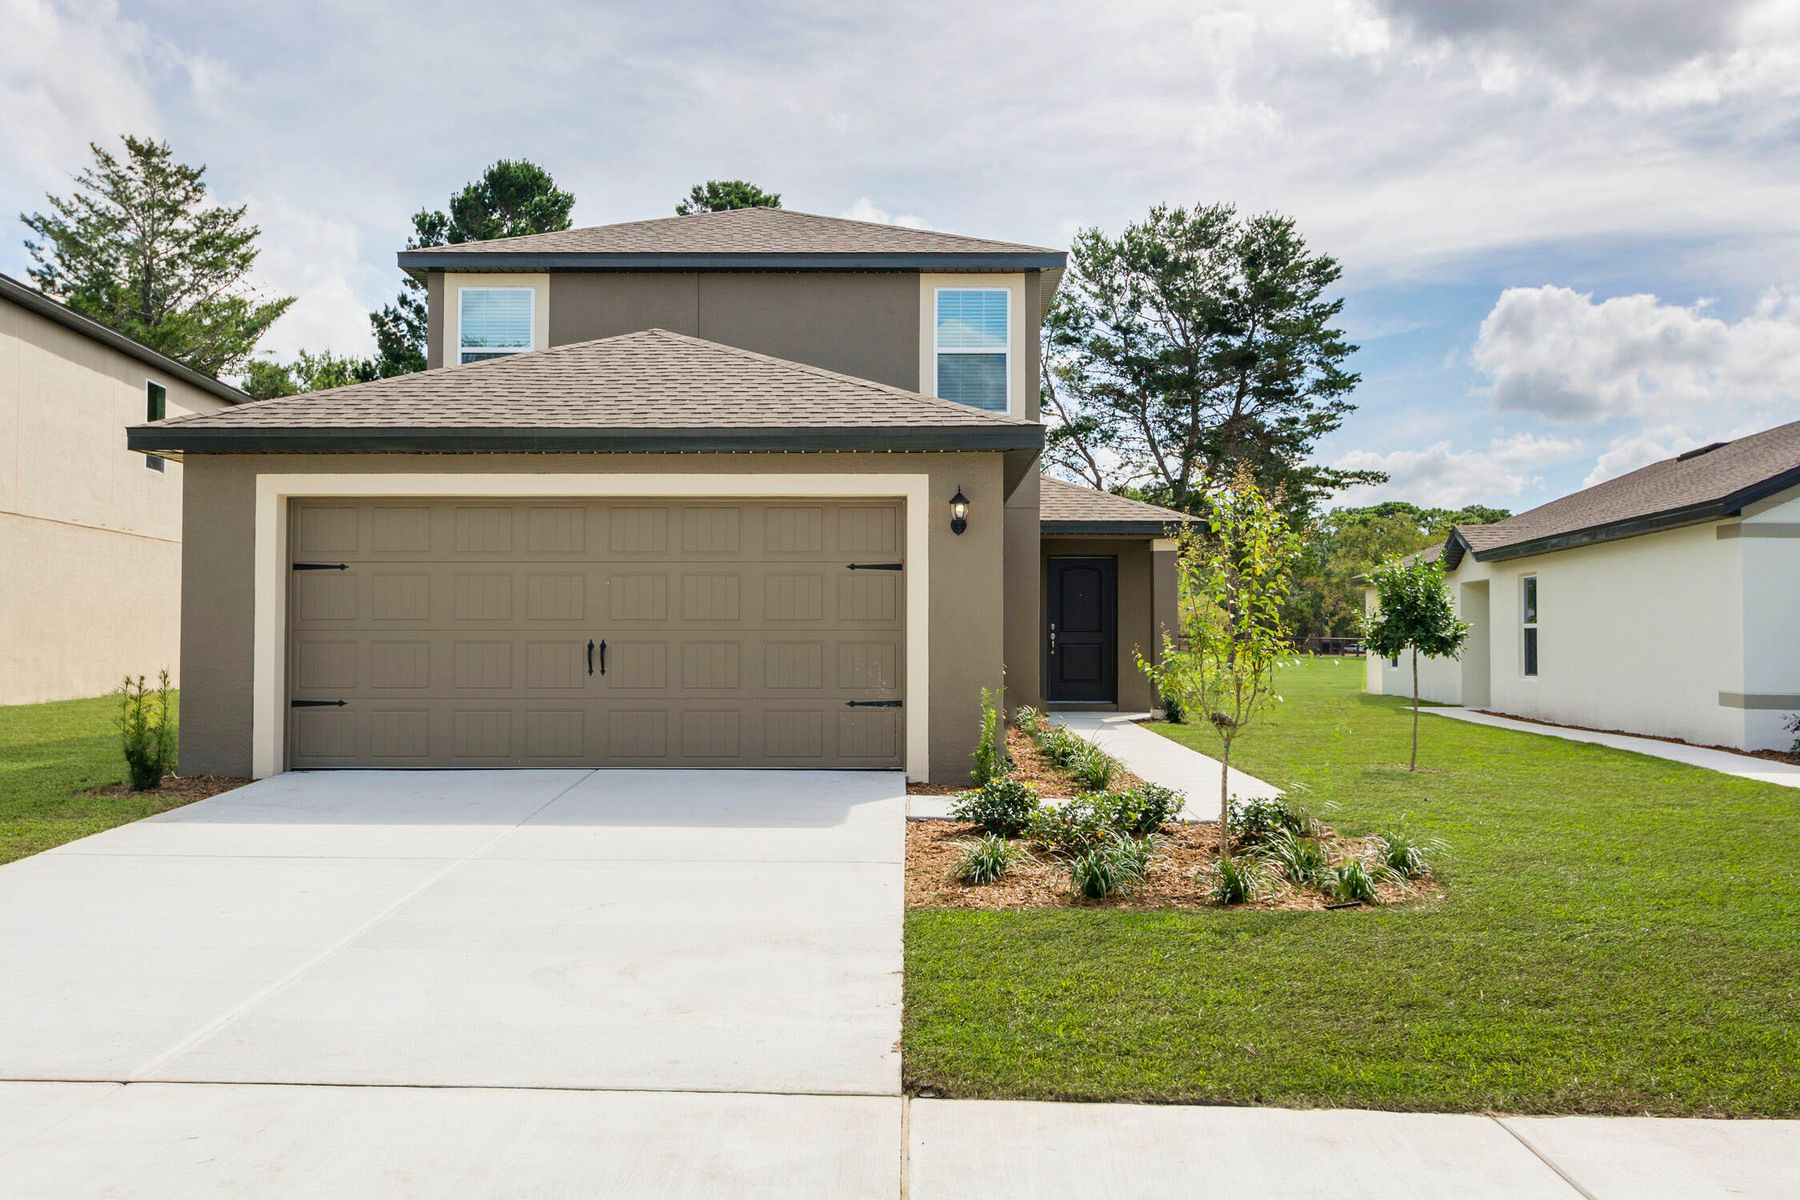 The Gasparilla by LGI Homes:The Gasparilla features multiple spacious bedrooms and an upstairs bonus loft